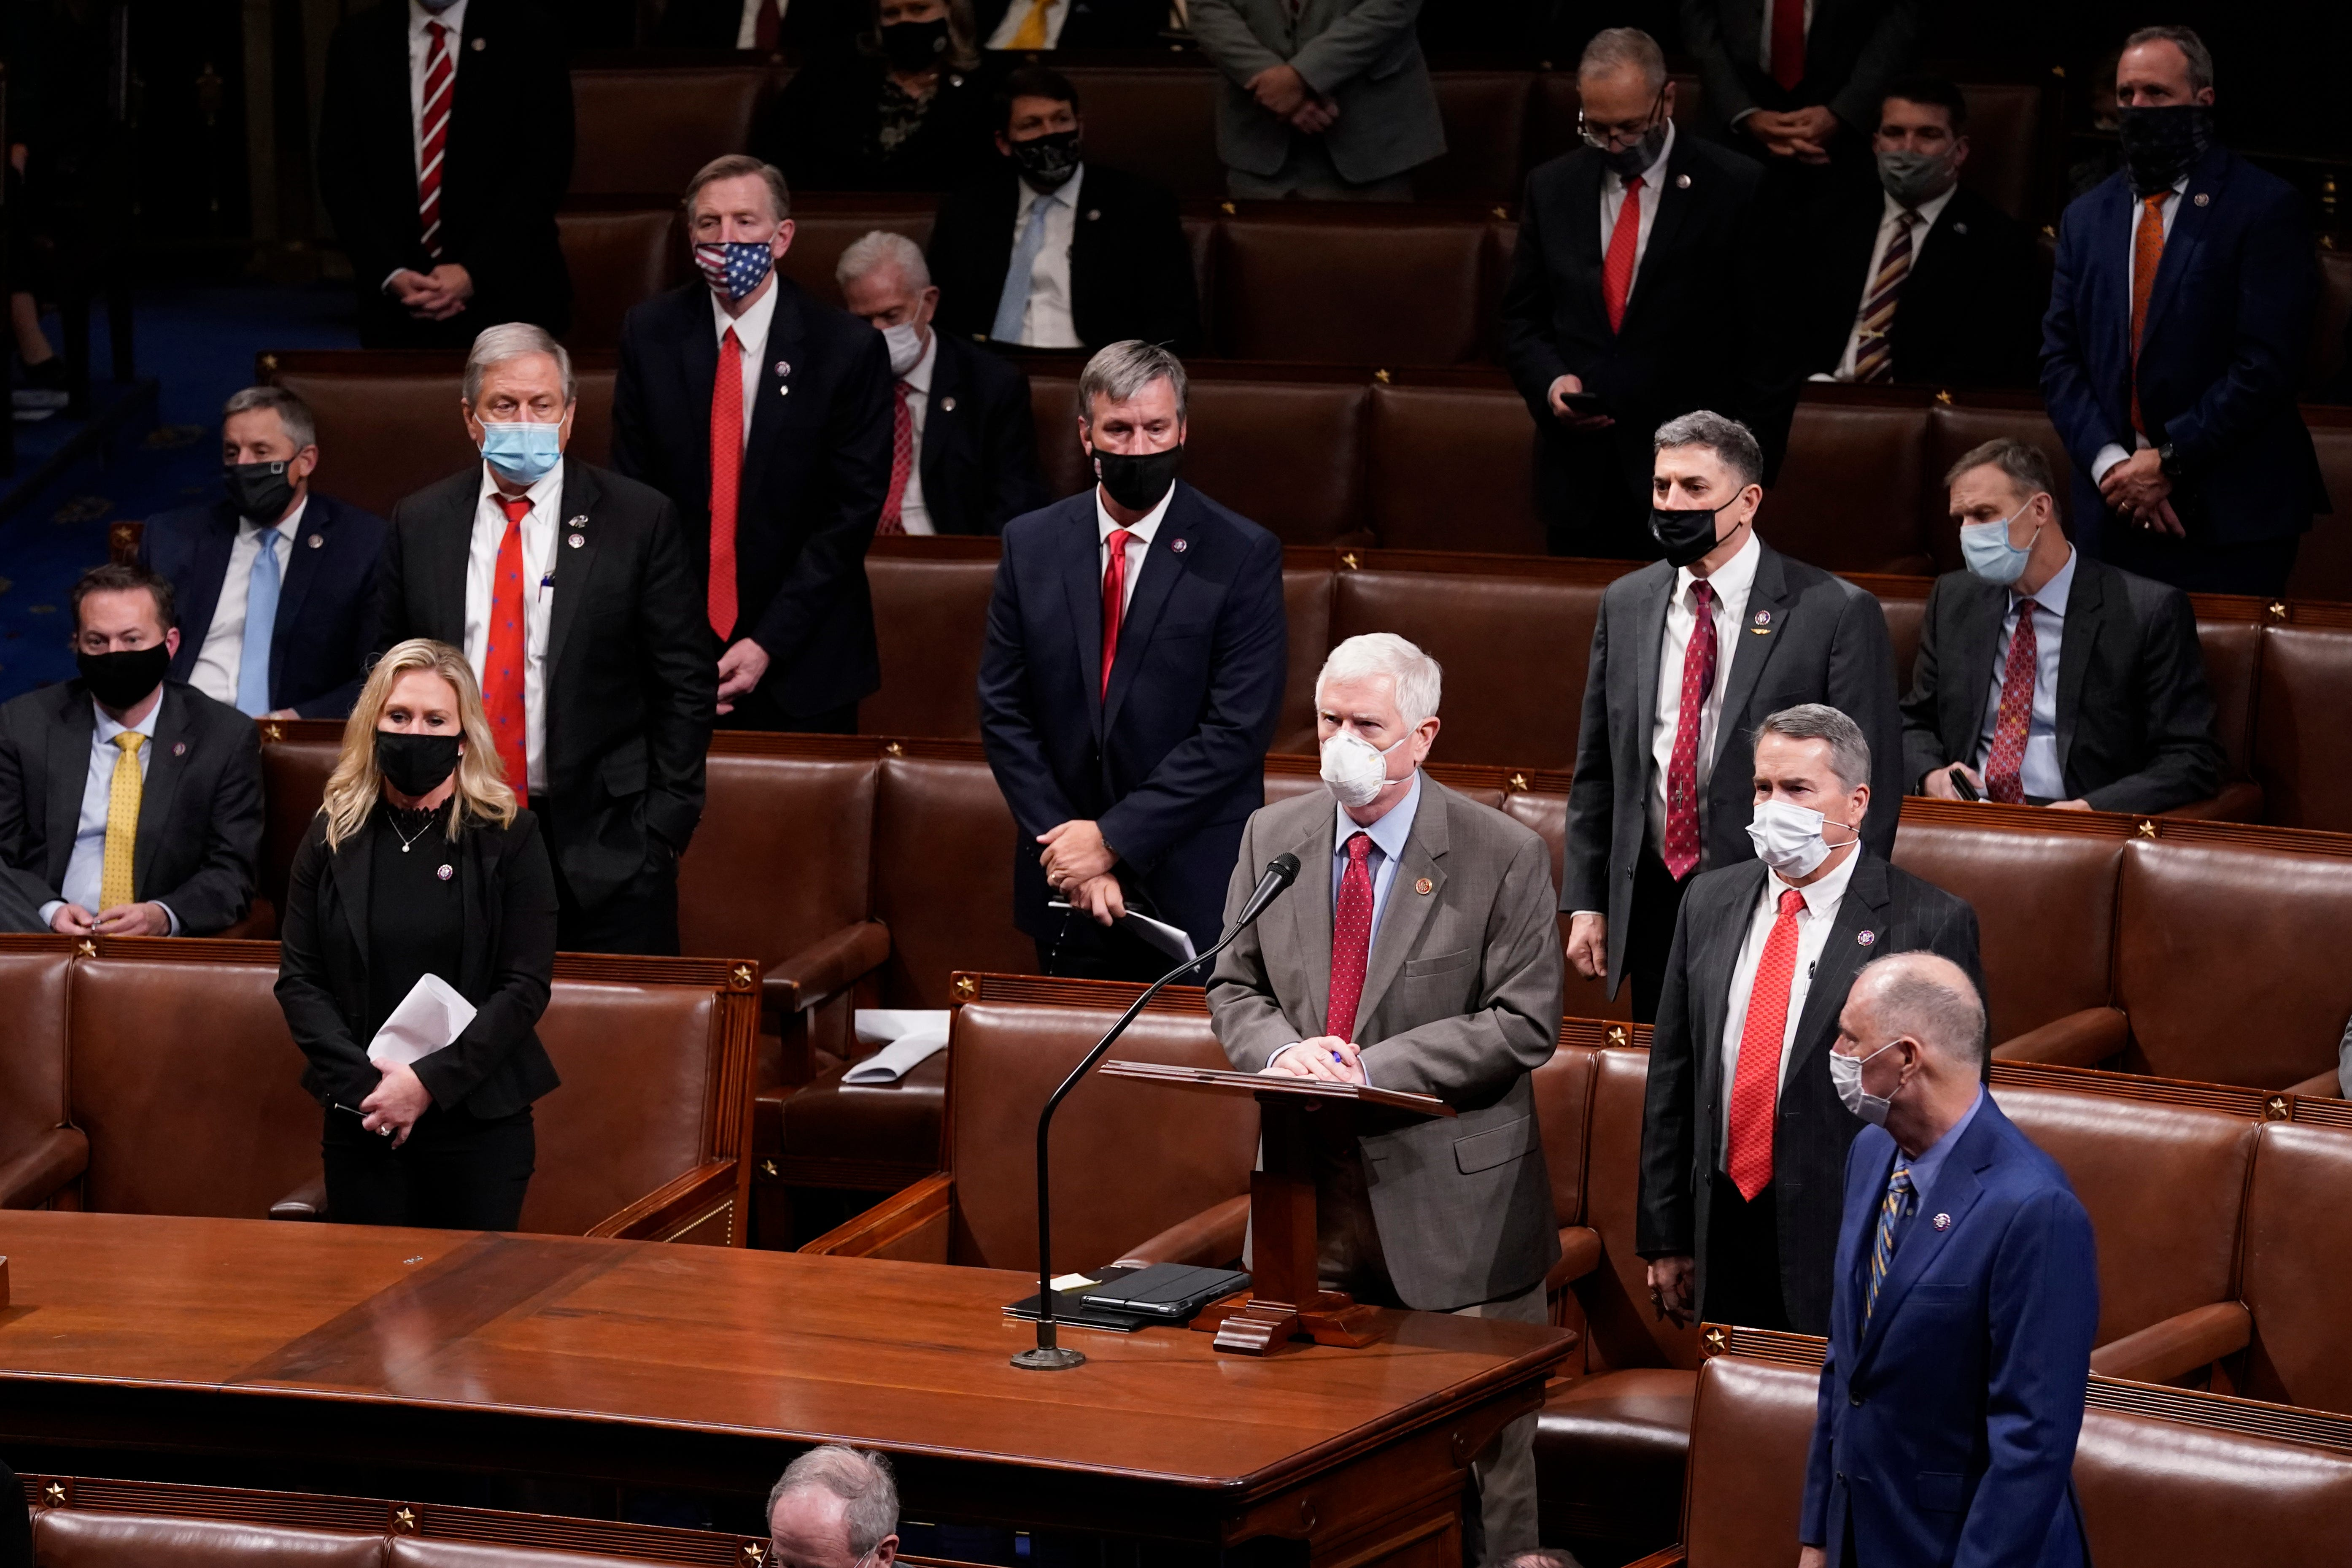 Rep. Mo Brooks, R-Ala., objects to confirming the Electoral College votes from Nevada during a joint session of the House and Senate to confirm the Electoral College votes cast in November's election, at the Capitol, early Thursday, Jan 7, 2021, in Washington. (AP Photo/Andrew Harnik) ORG XMIT: DCAH352